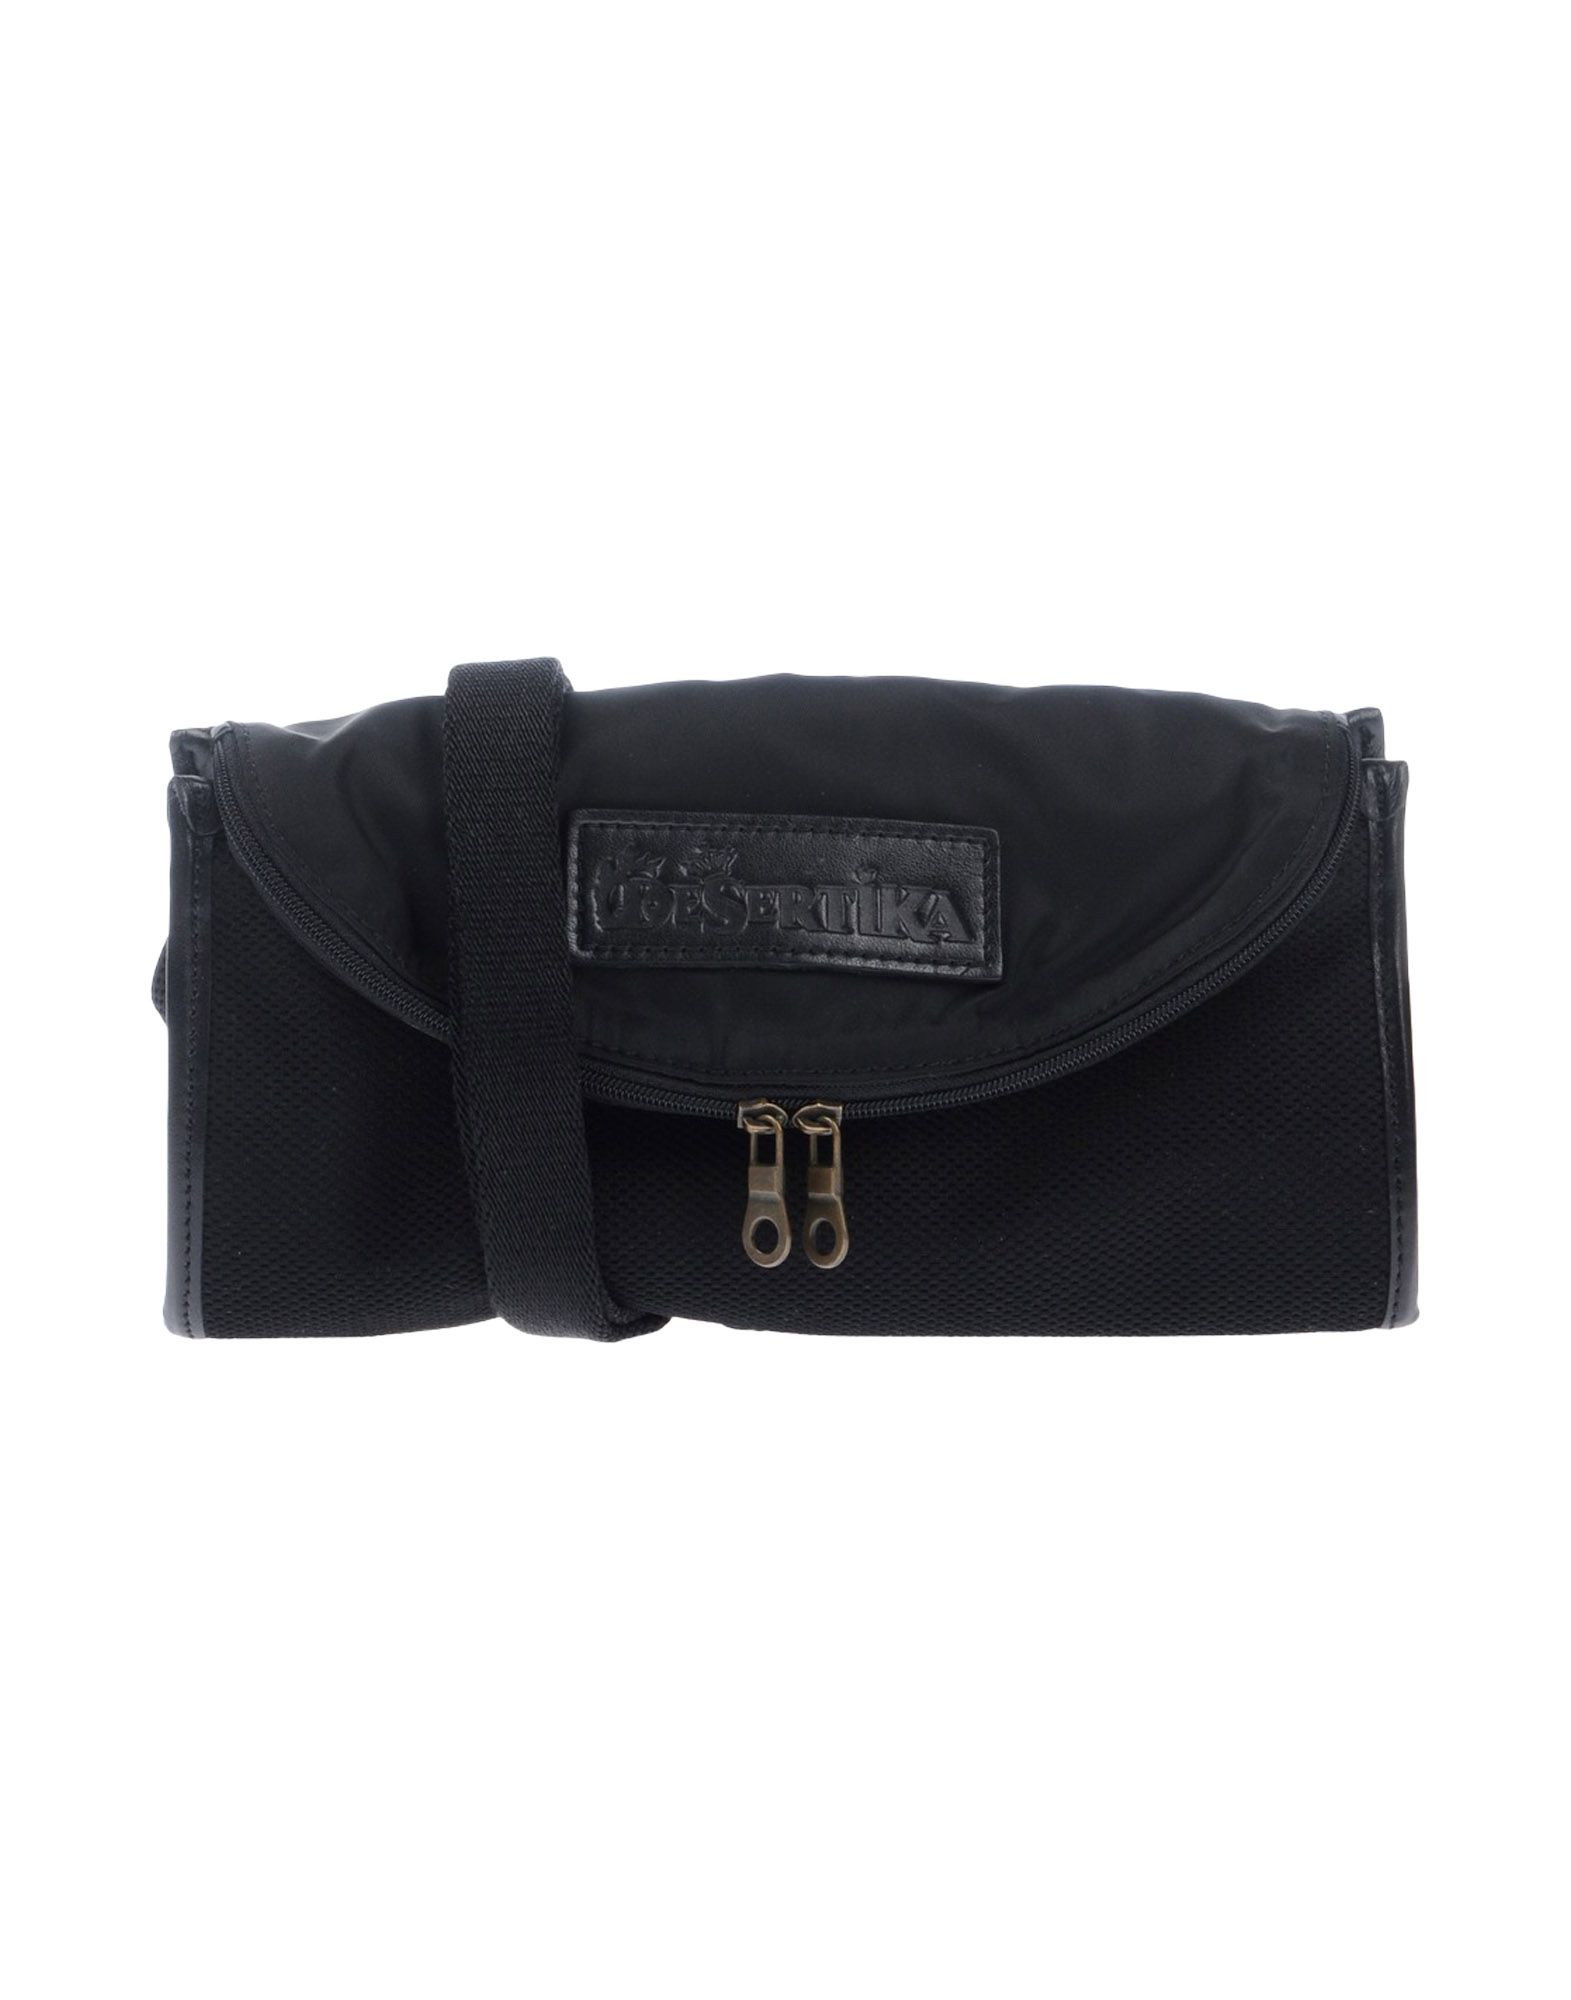 DESERTIKA Handbag in Black